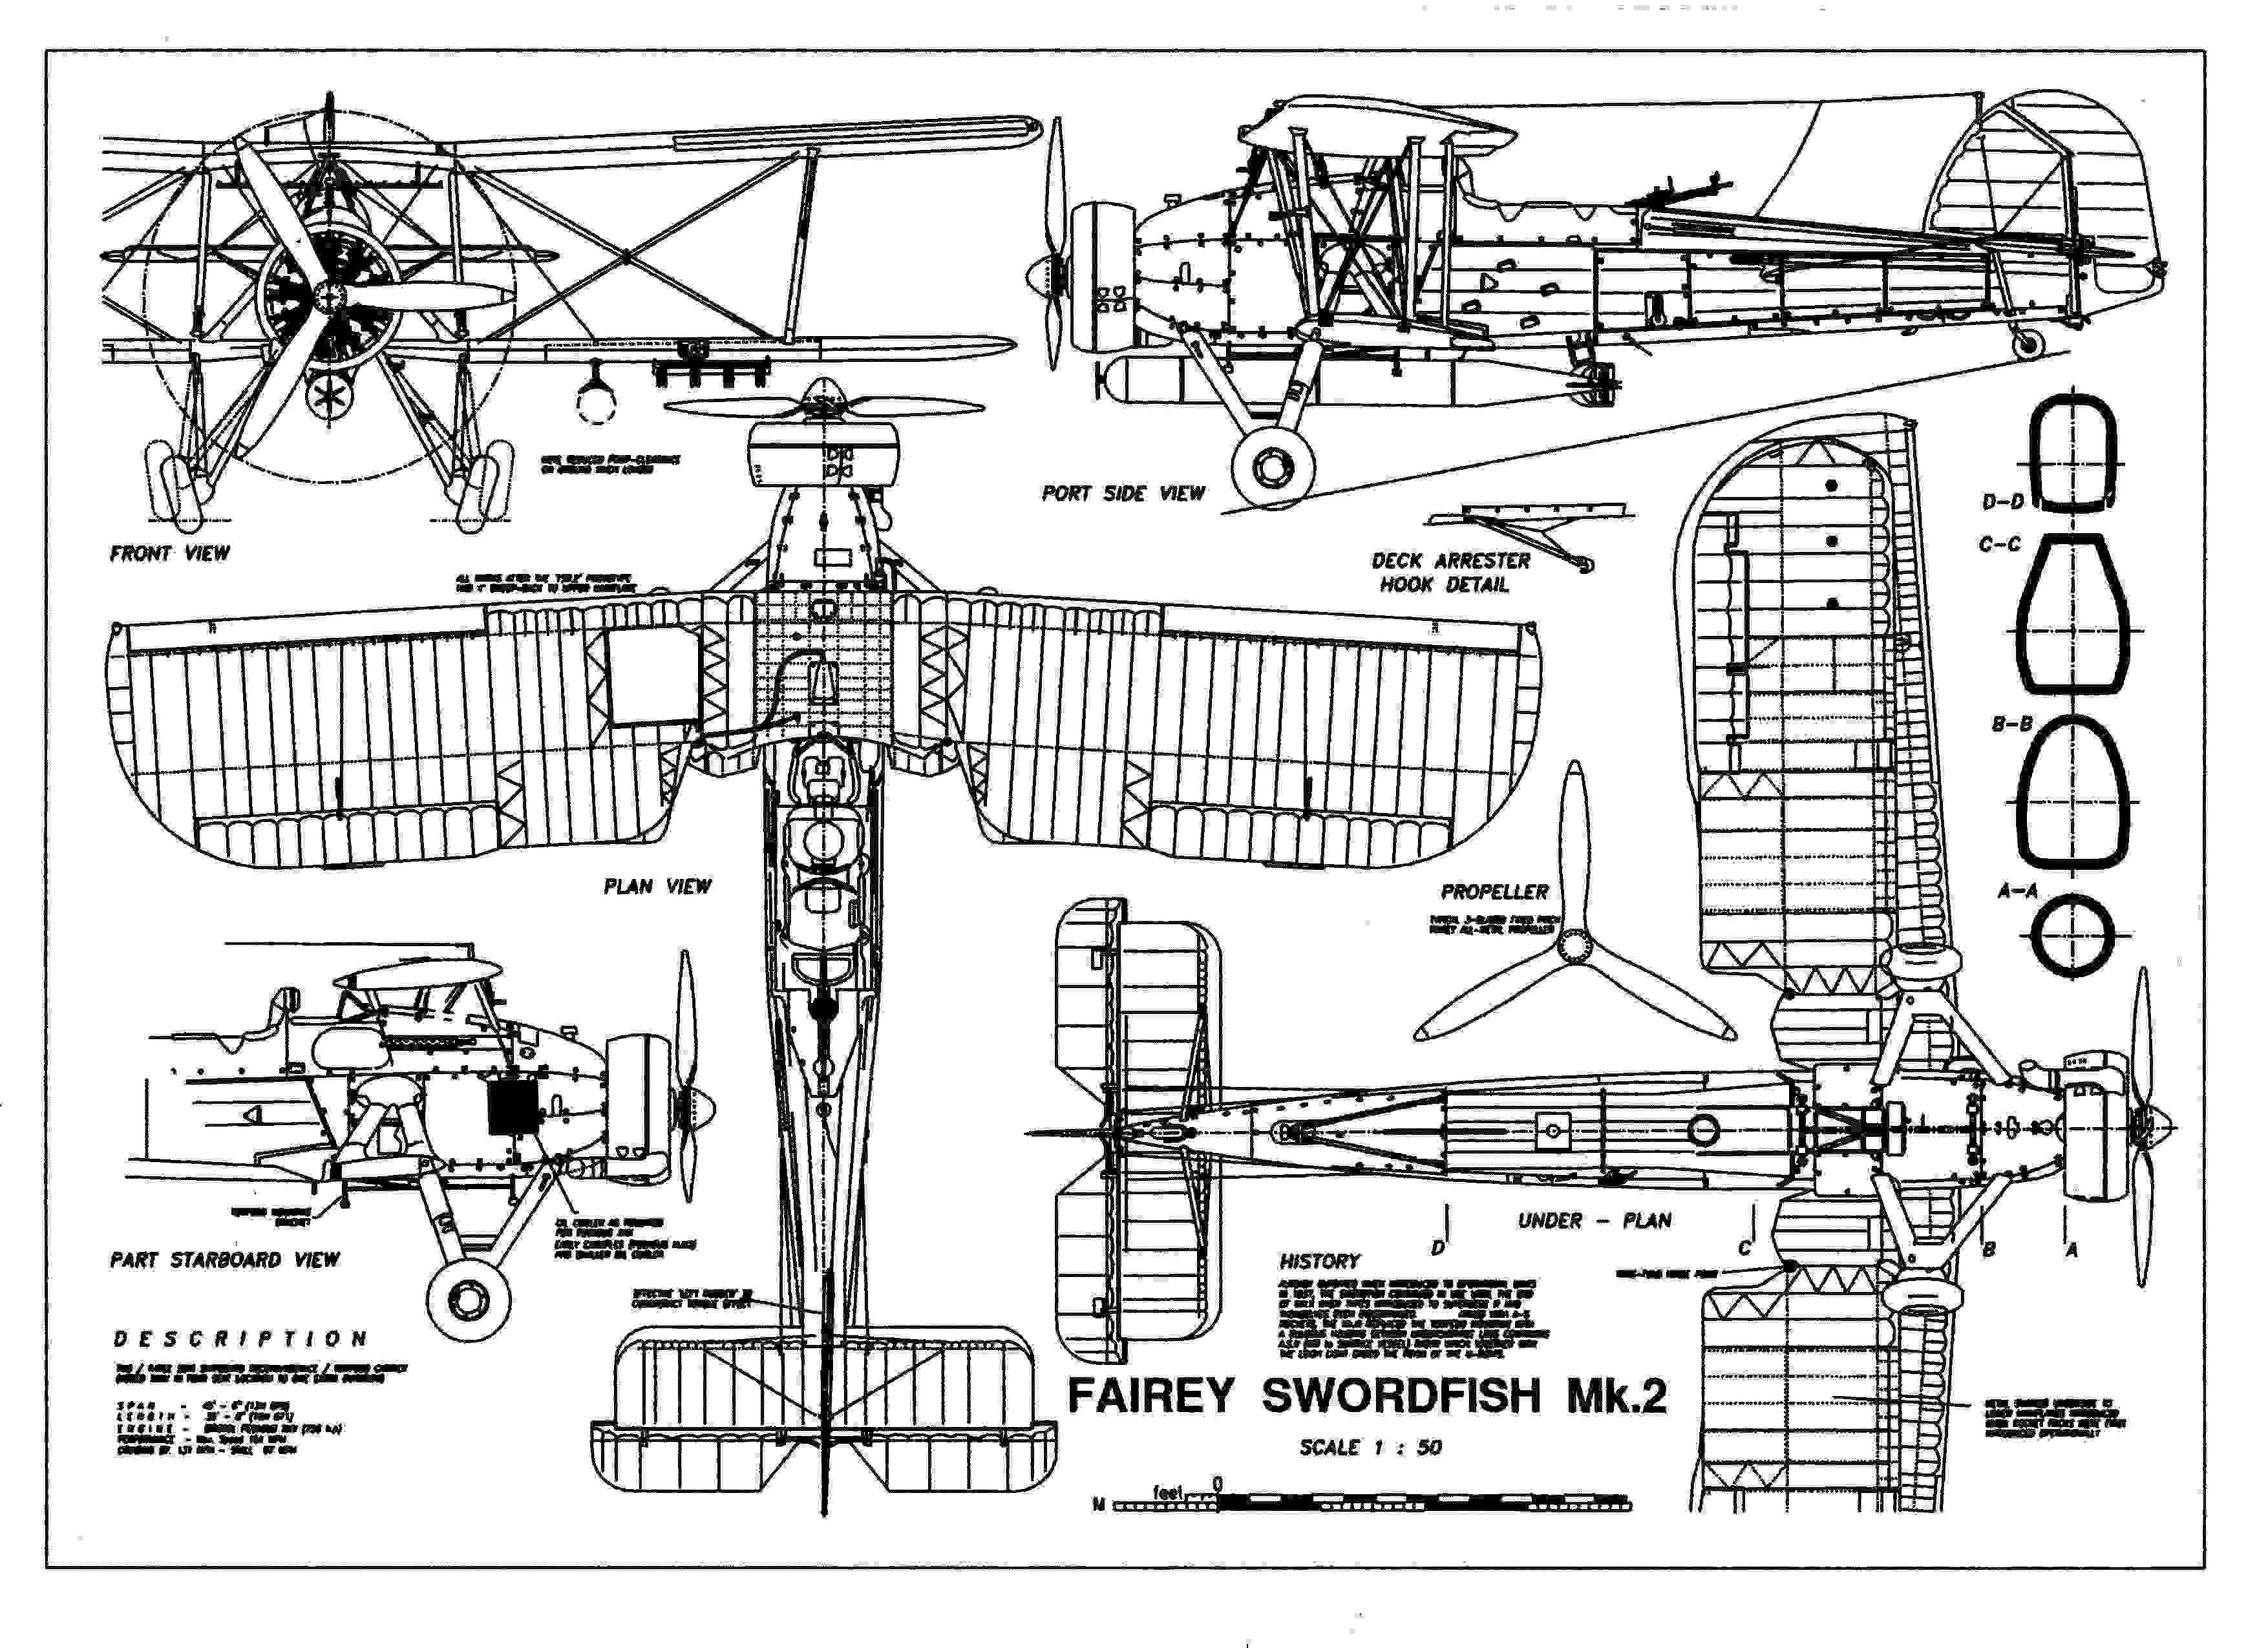 Fairy swordfish mark 2 aircraft 3 view scale drawings pinterest blueprint art of plane fairey swordfish technical drawings engineering drawings patent blue print art item 0006 malvernweather Image collections